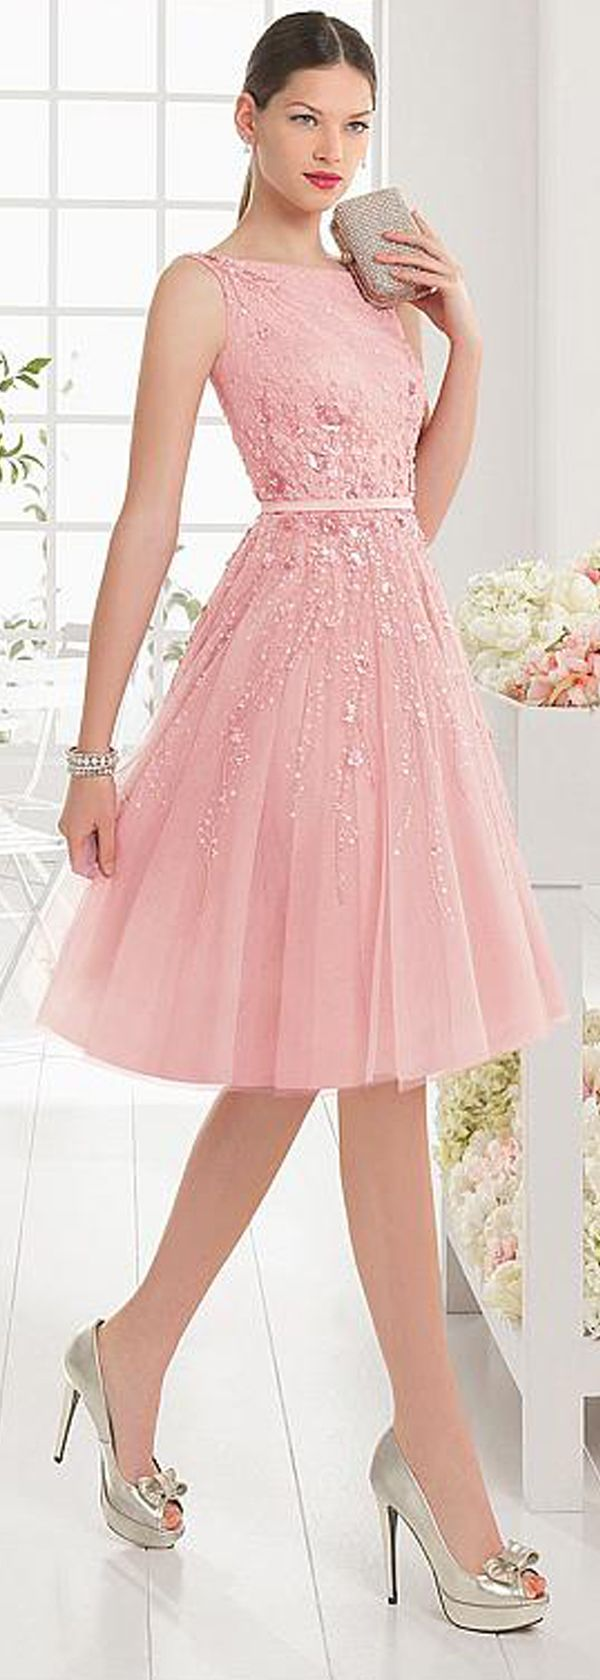 Energetic Tulle & Satin Bateau Neckline A-Line Cocktail Dresses With ...